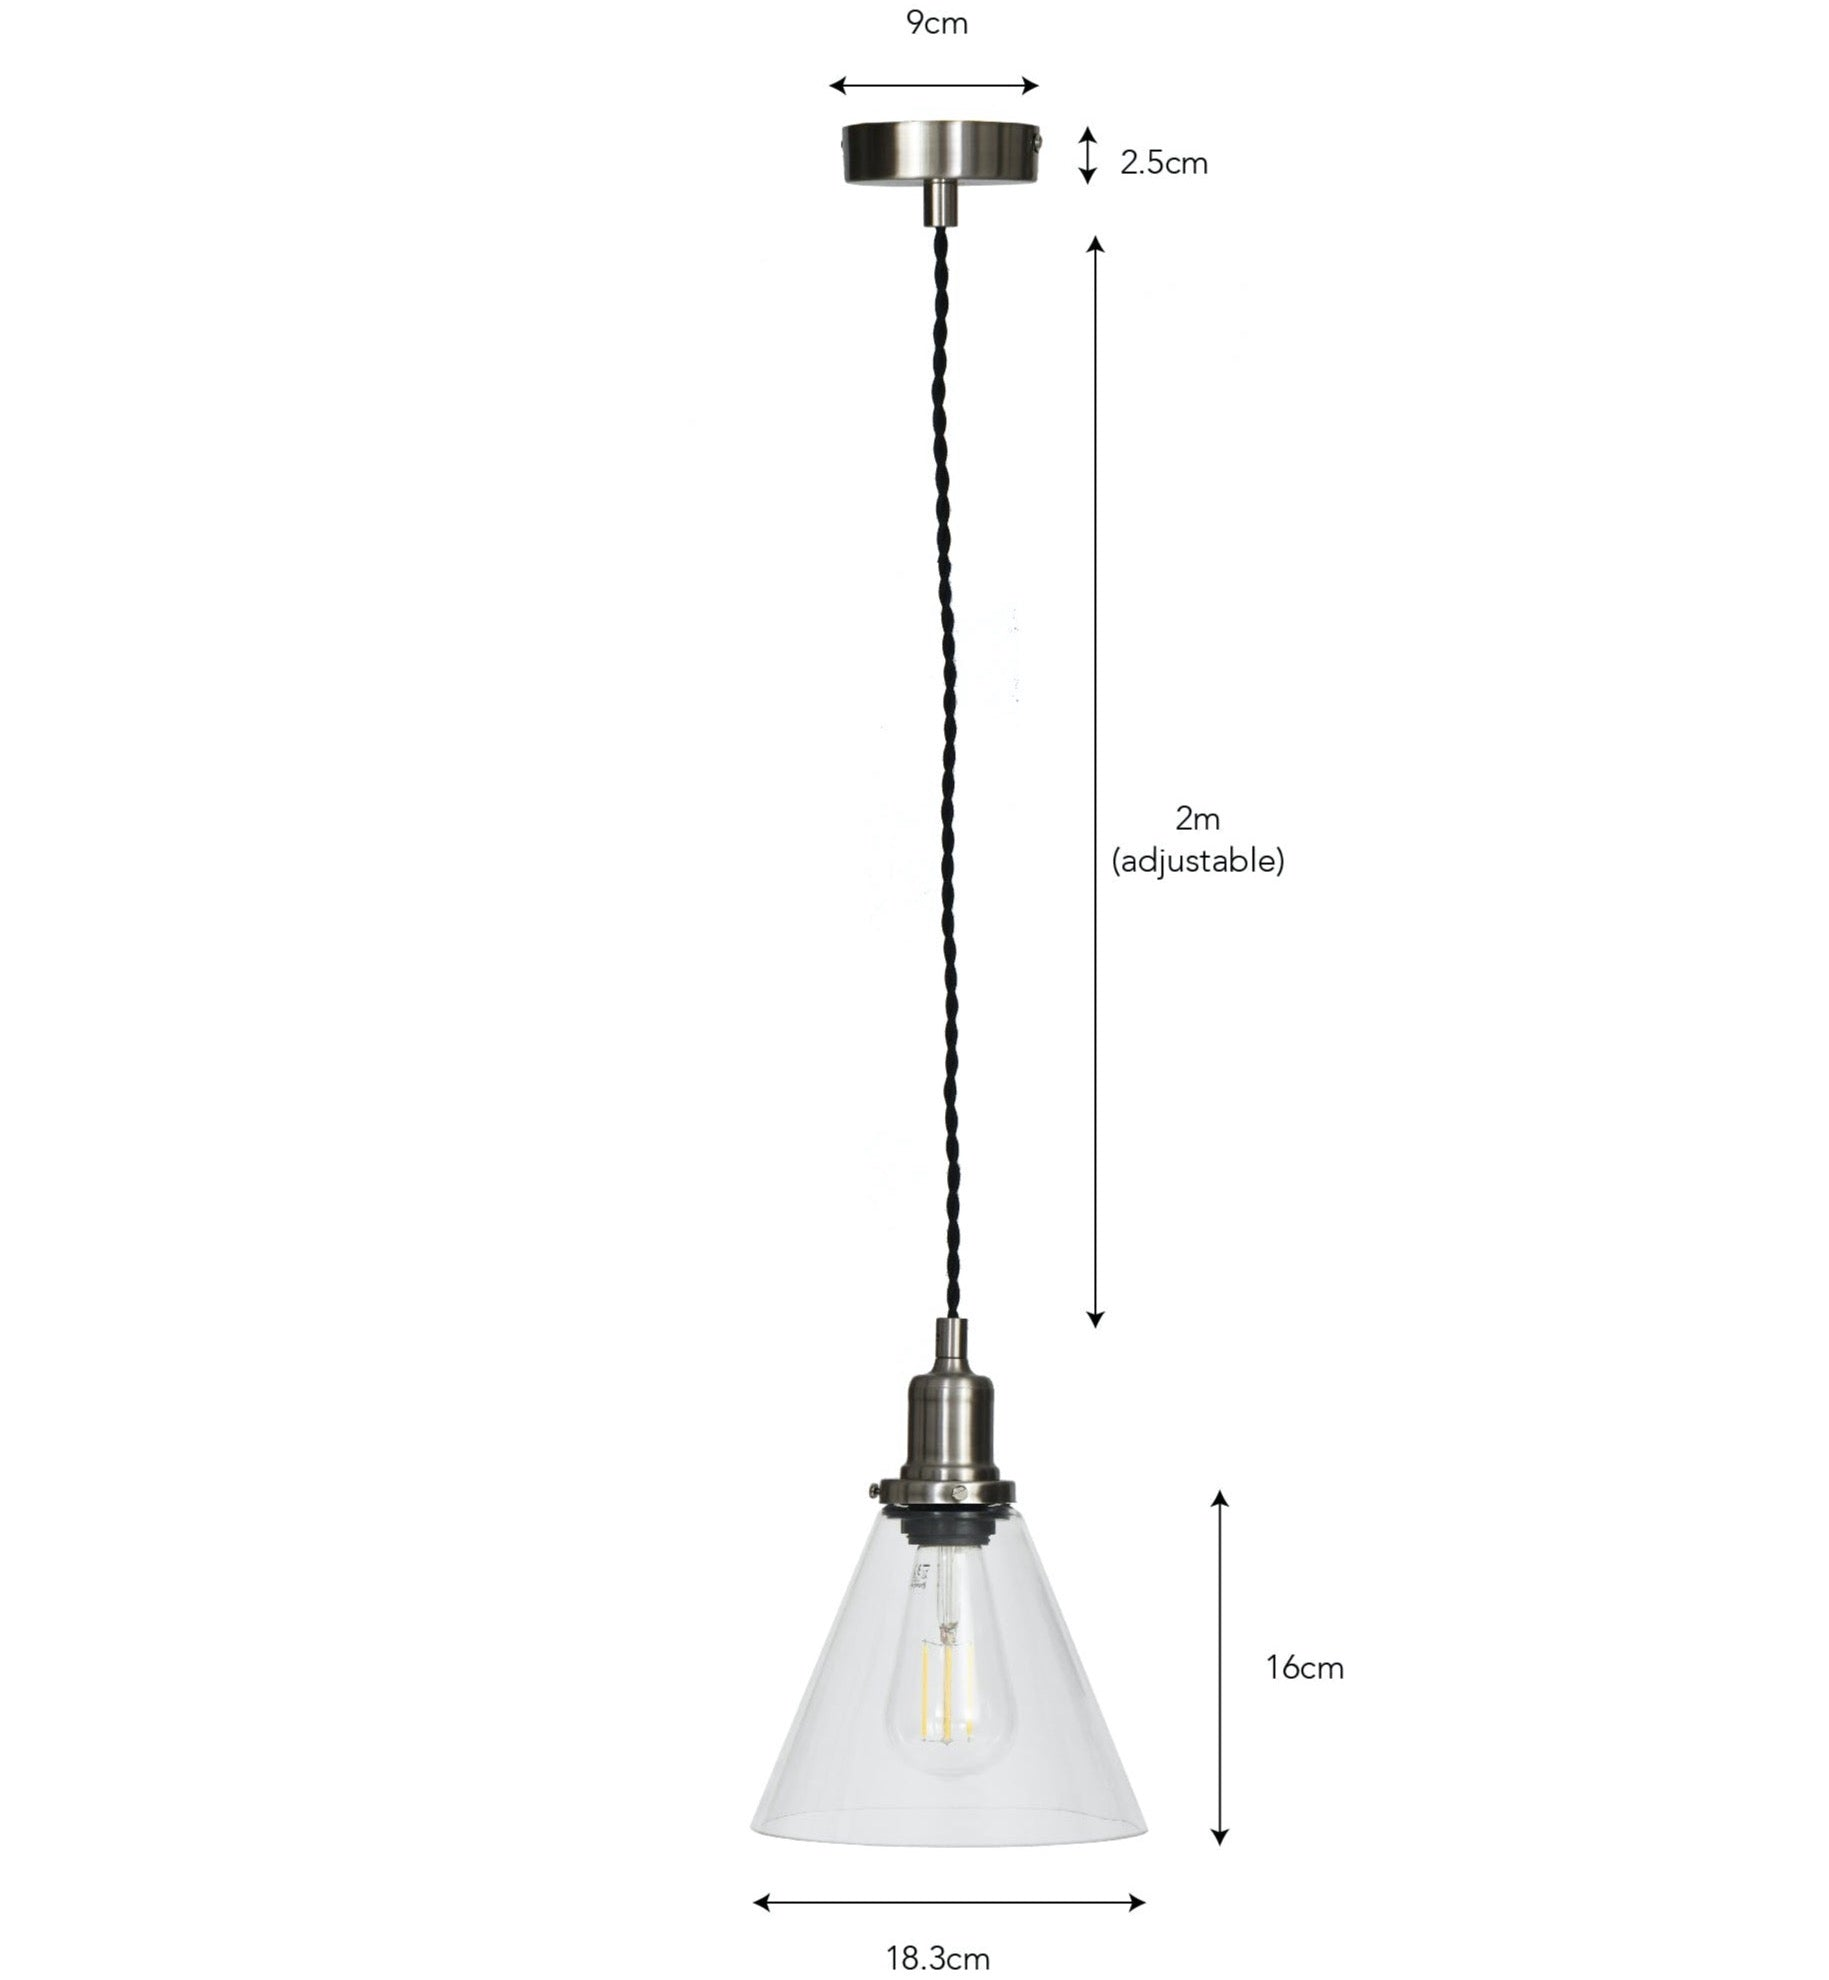 Hoxton Cone Pendant Light - Satin Nickel